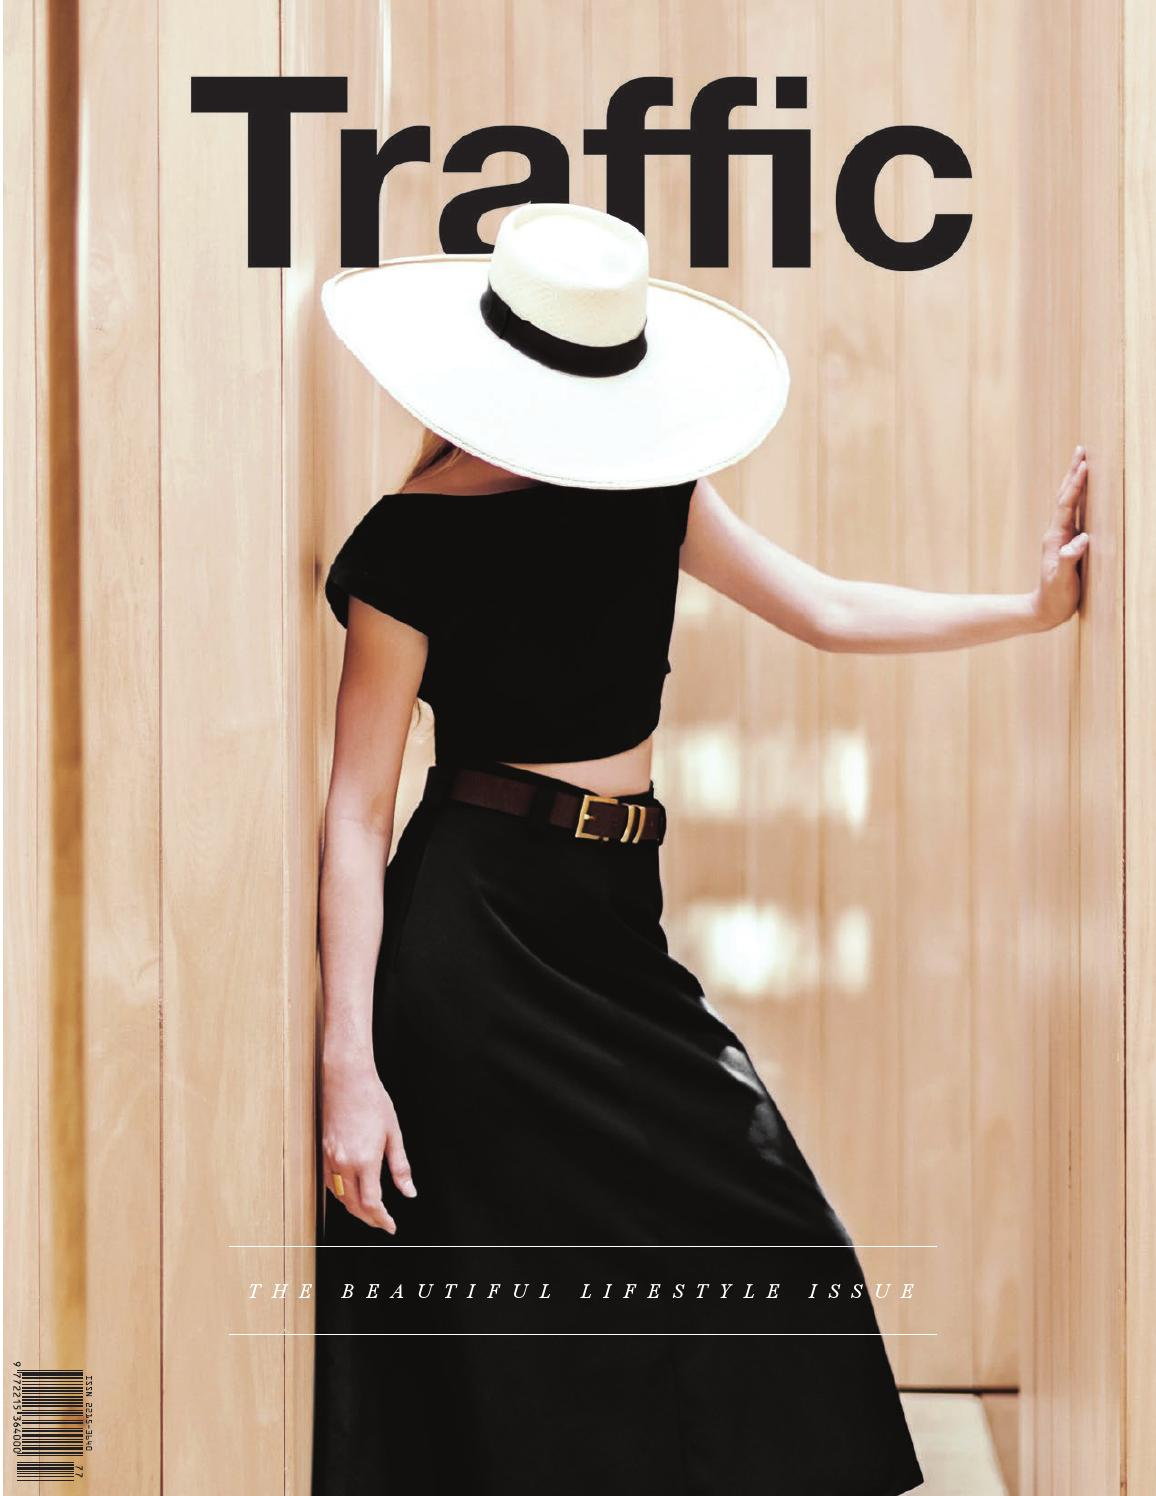 a5427ddde2 Traffic 17 The Beautiful Lifestyle Issue by Traffic Communications - issuu